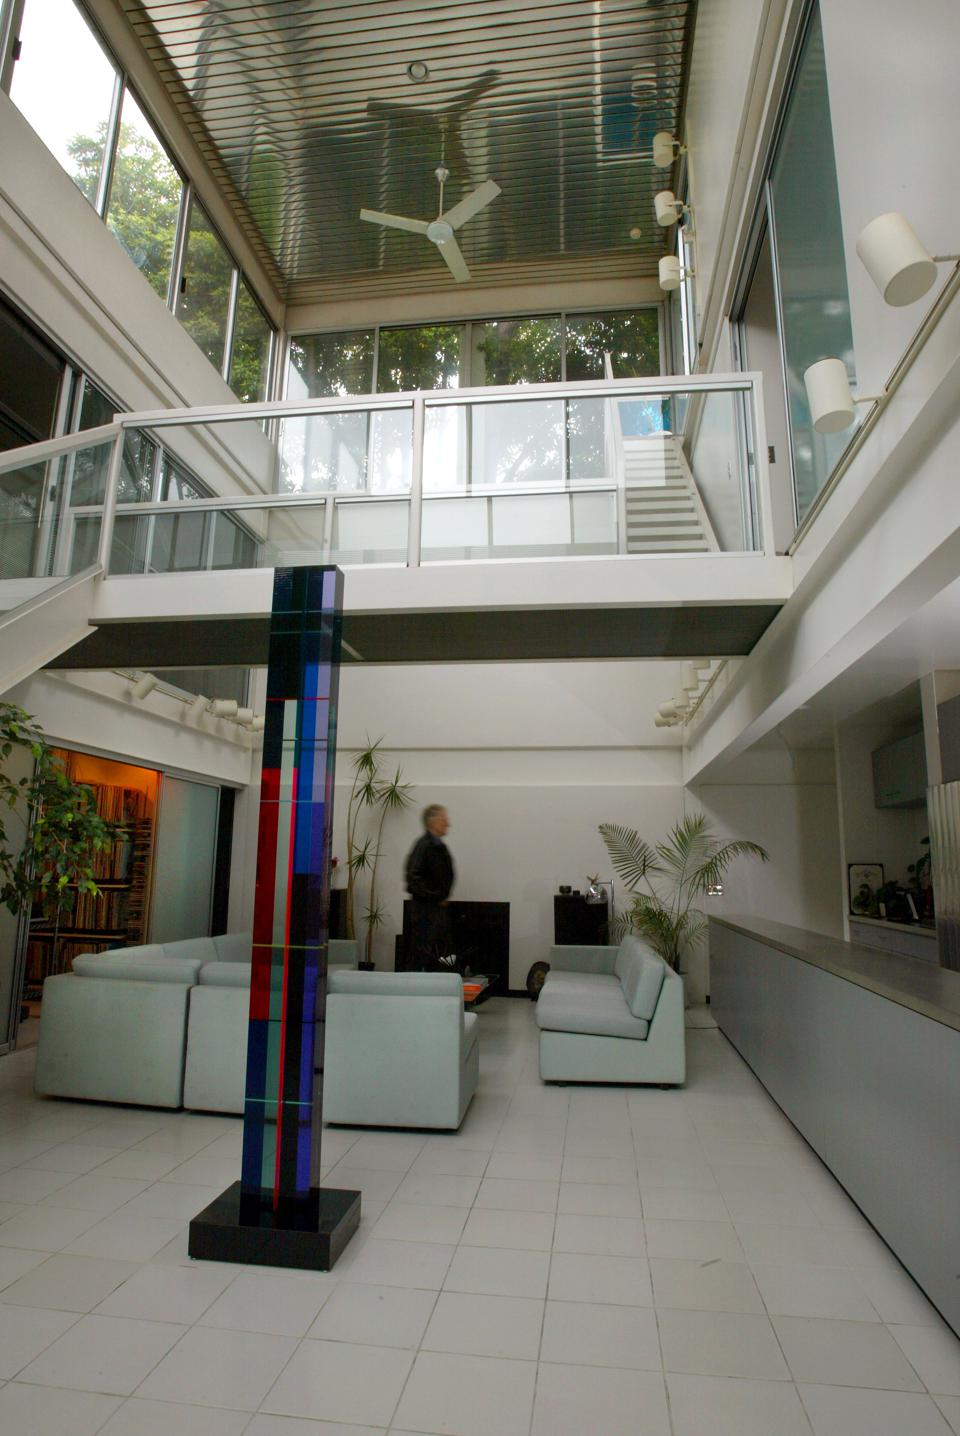 Architect Pierre Koenig designed two of the iconic Modernist houses in Los Angeles in the 1950's kno